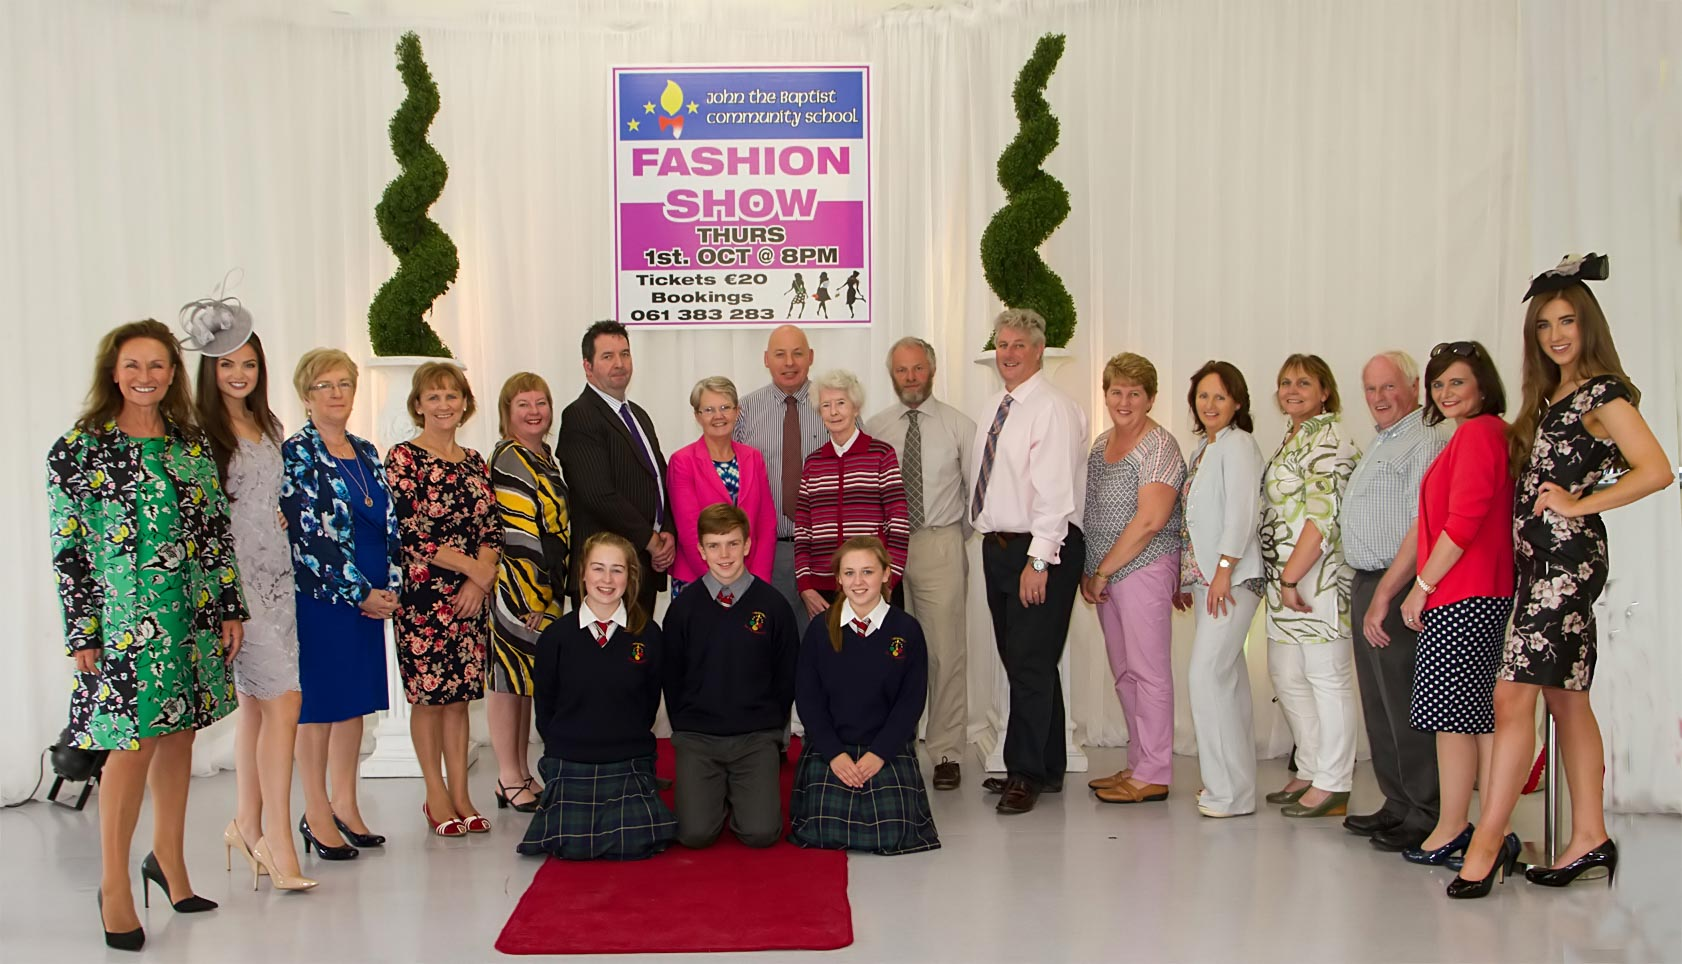 Gala fashion show at John the Baptist Community School Hospital